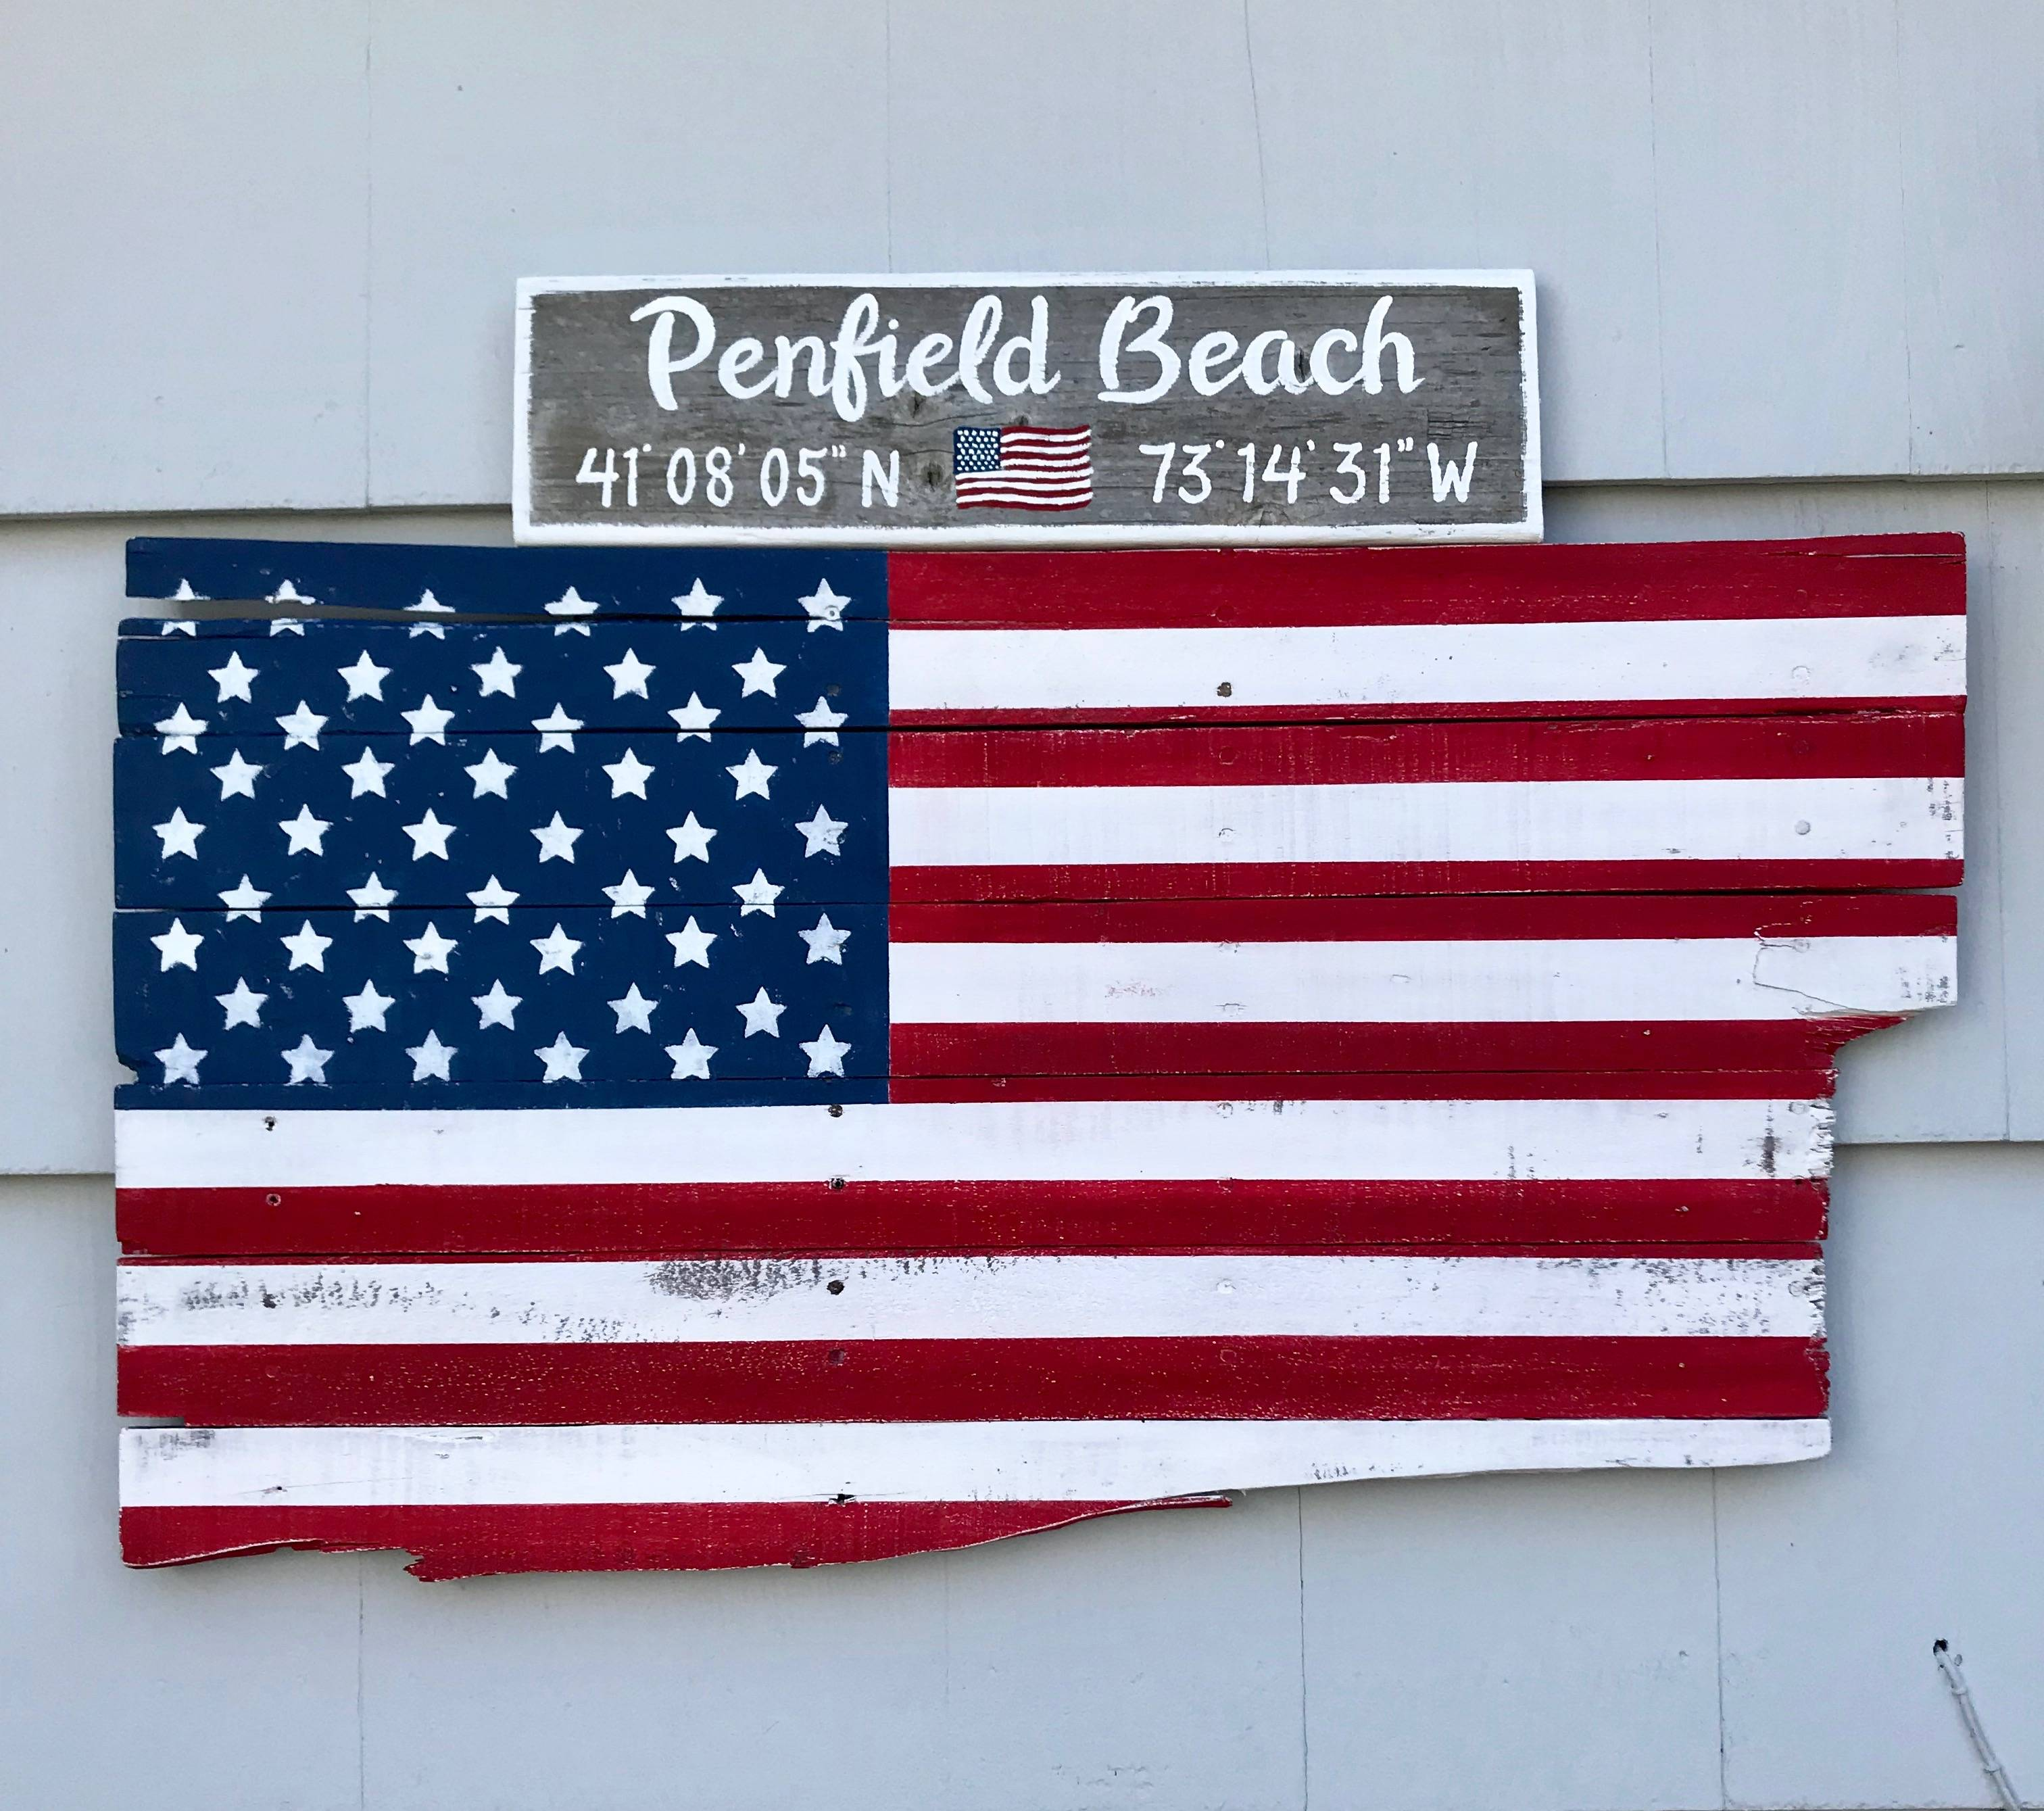 Beach name with lat/long